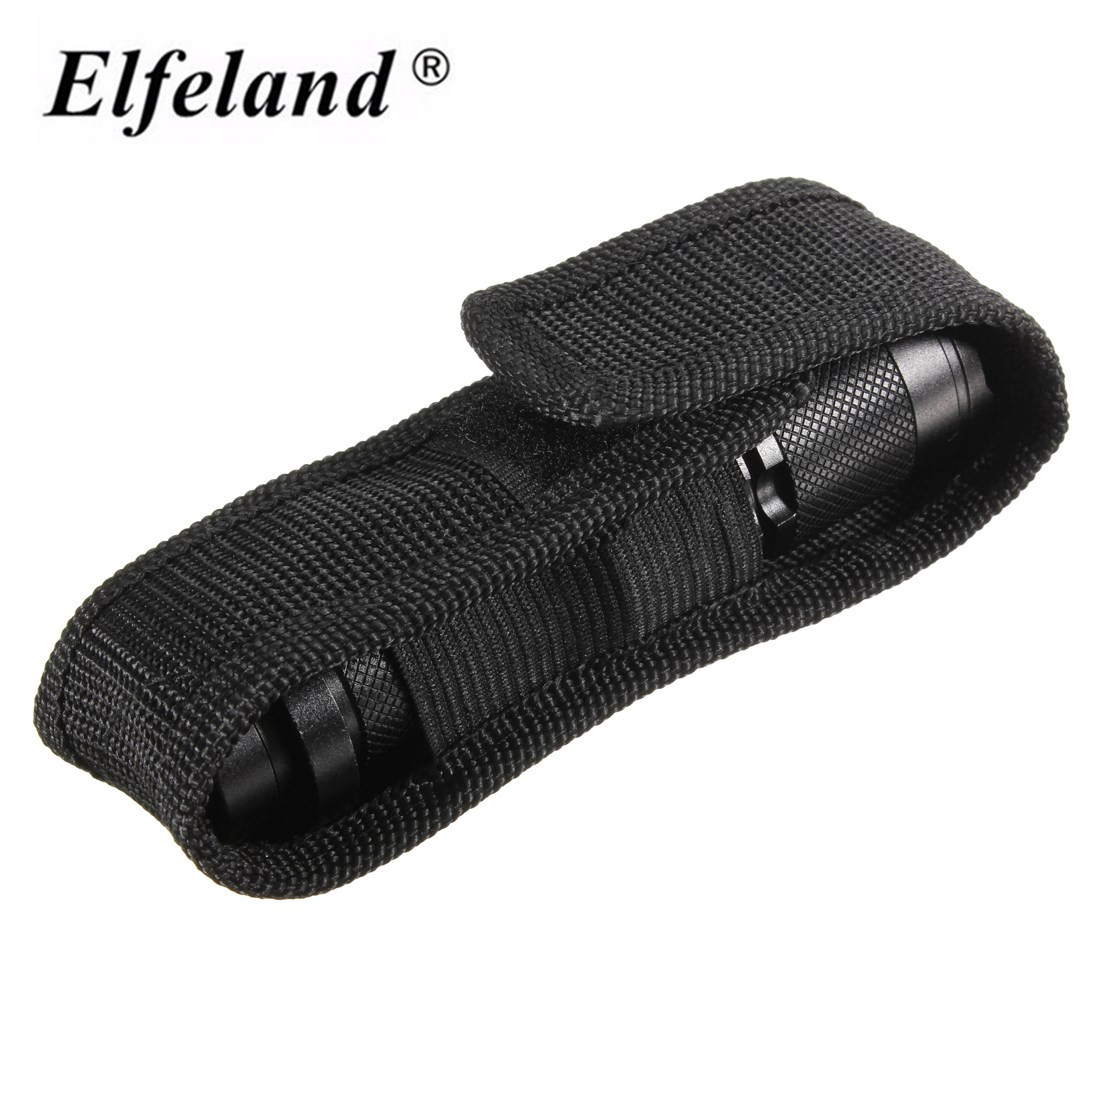 1pcs 13cm Black Nylon Holster Cover Belt High Quality P-ouch For LED Torch Flashlight For Most 18650 Flashlight Accessories